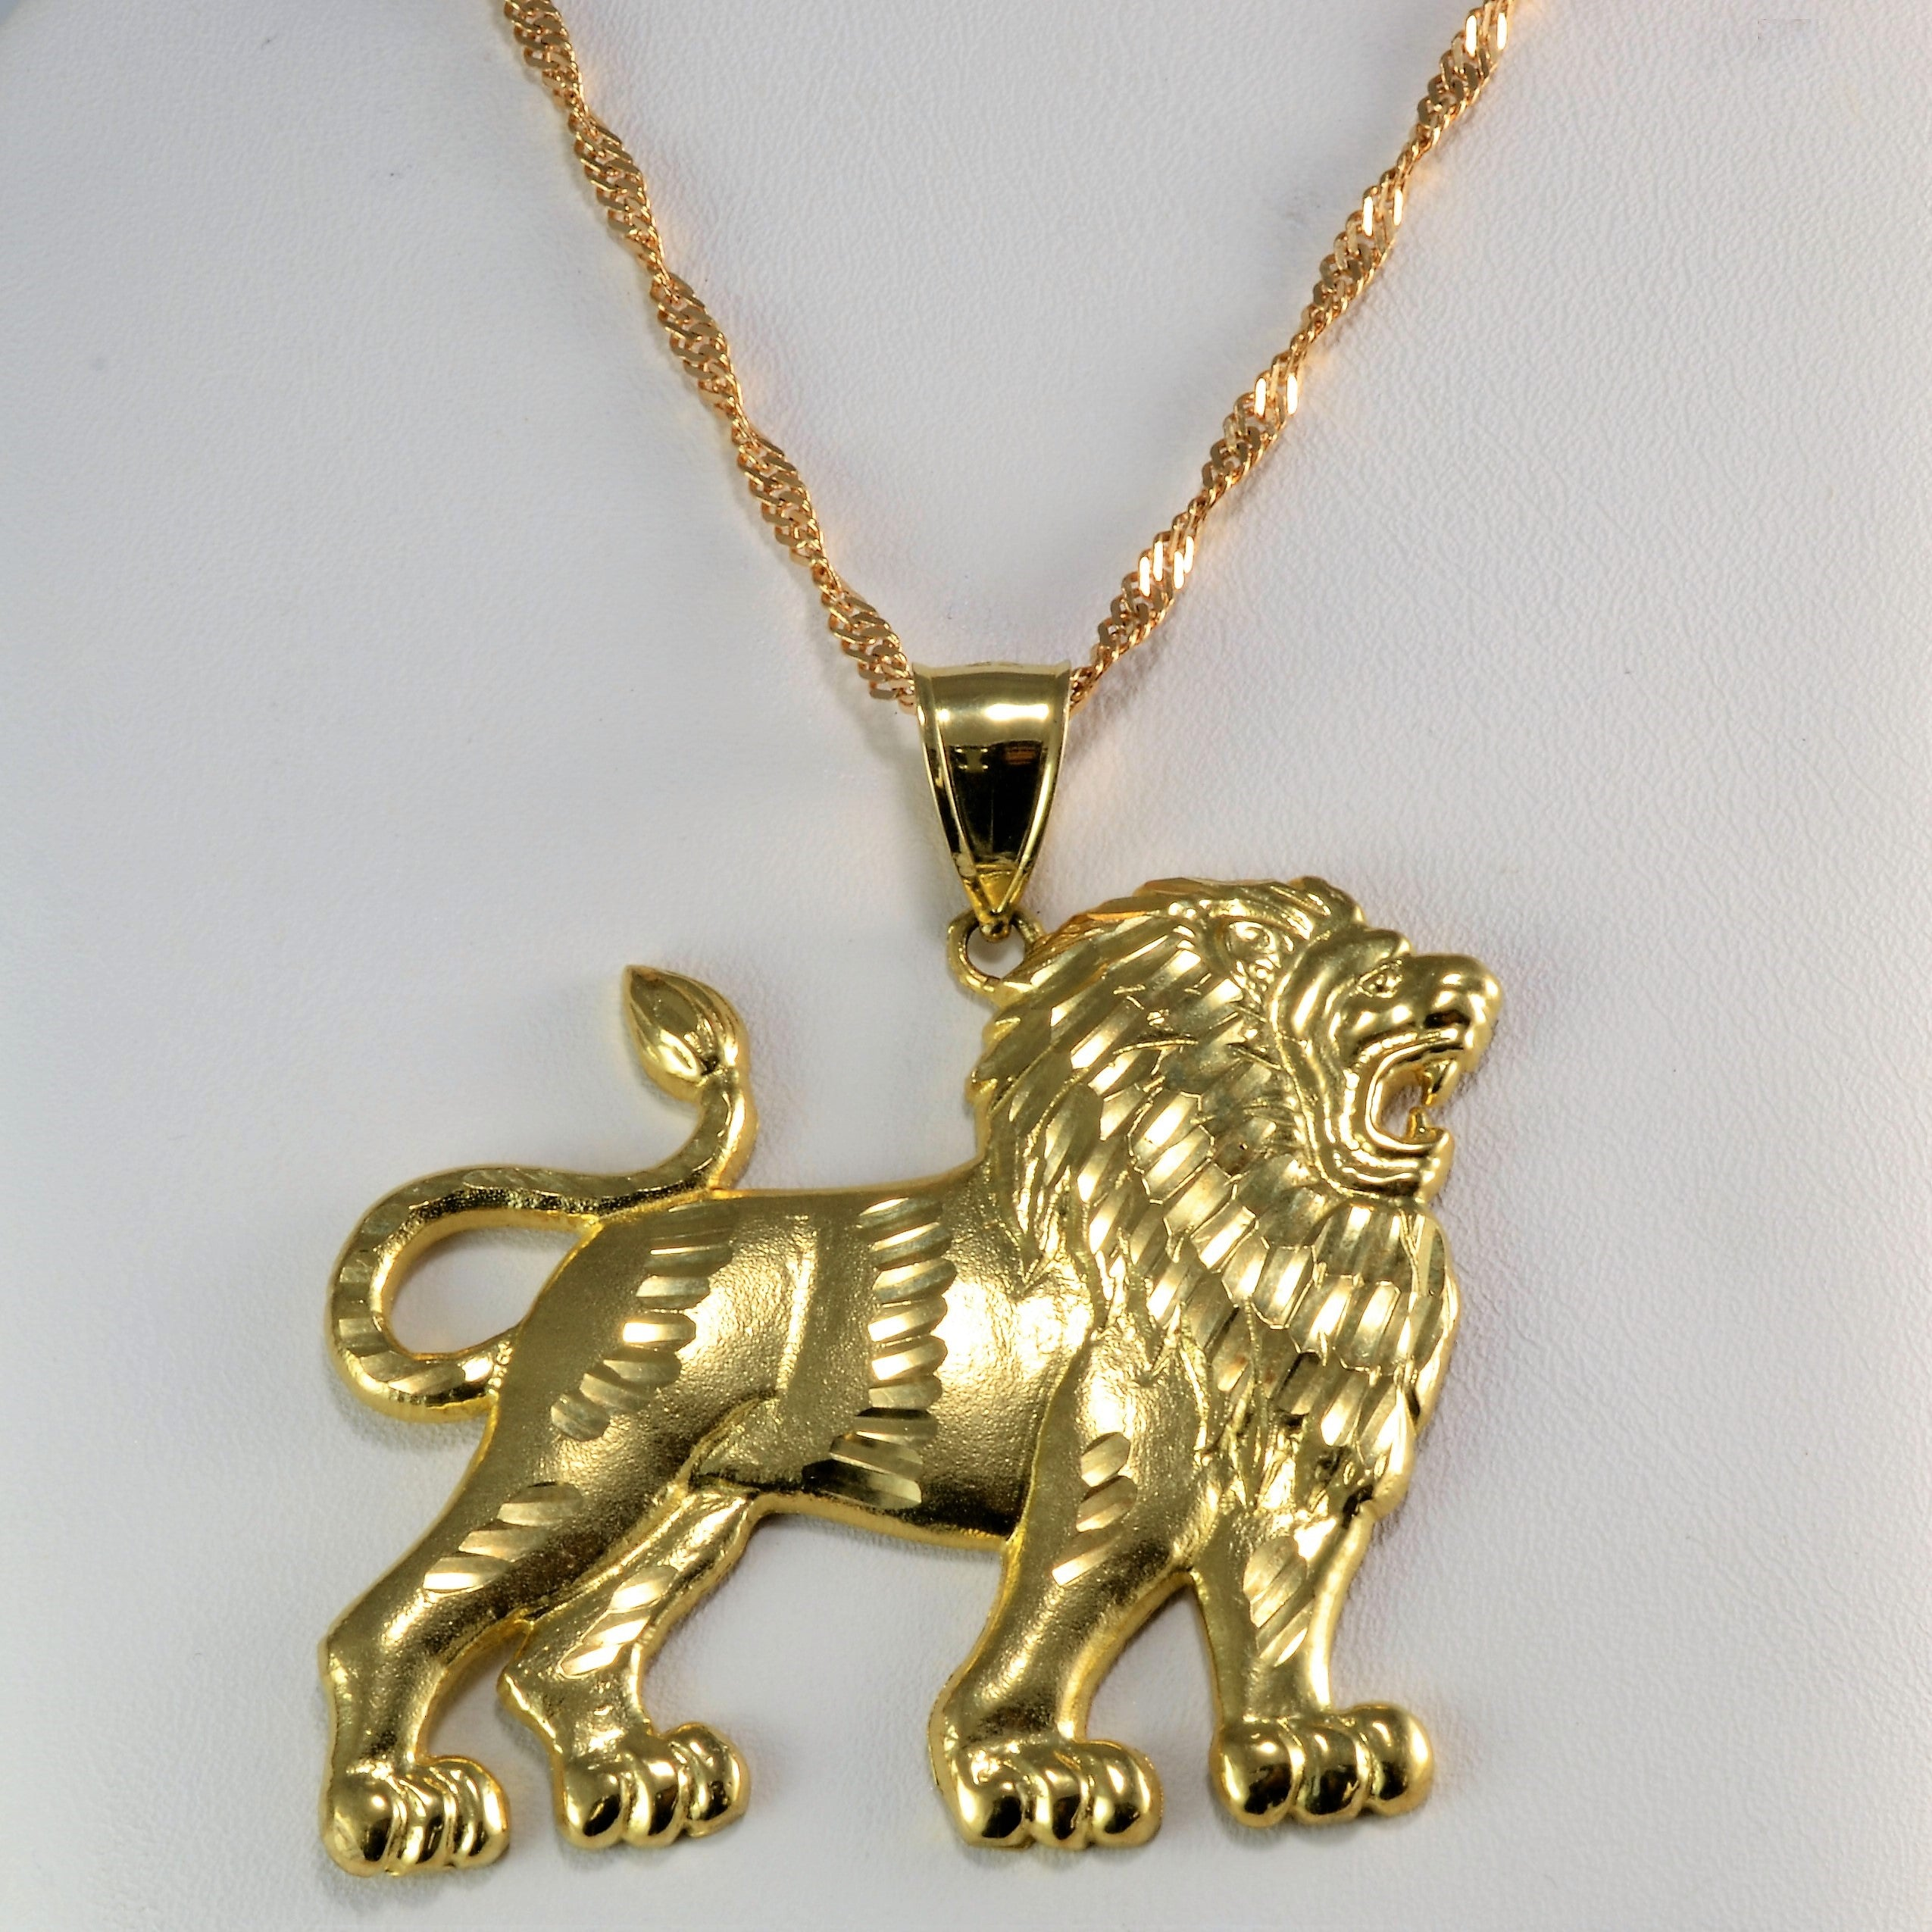 steel itm hip lion gold hop pendant necklace head rhinestone stainless men